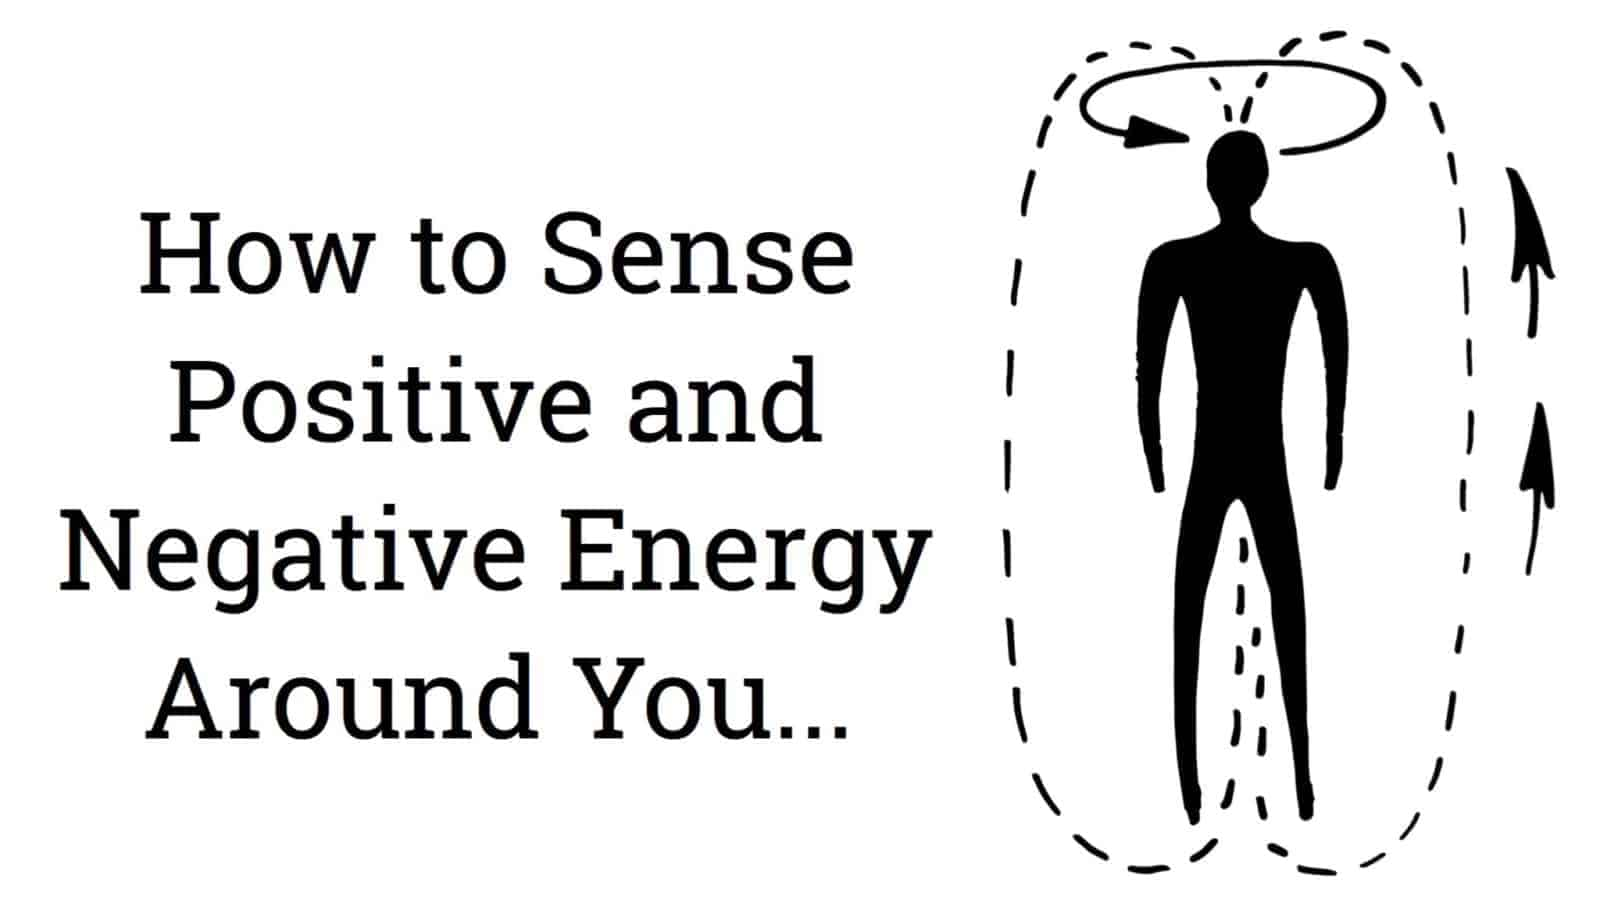 How to Sense Positive And Negative Energy Around You